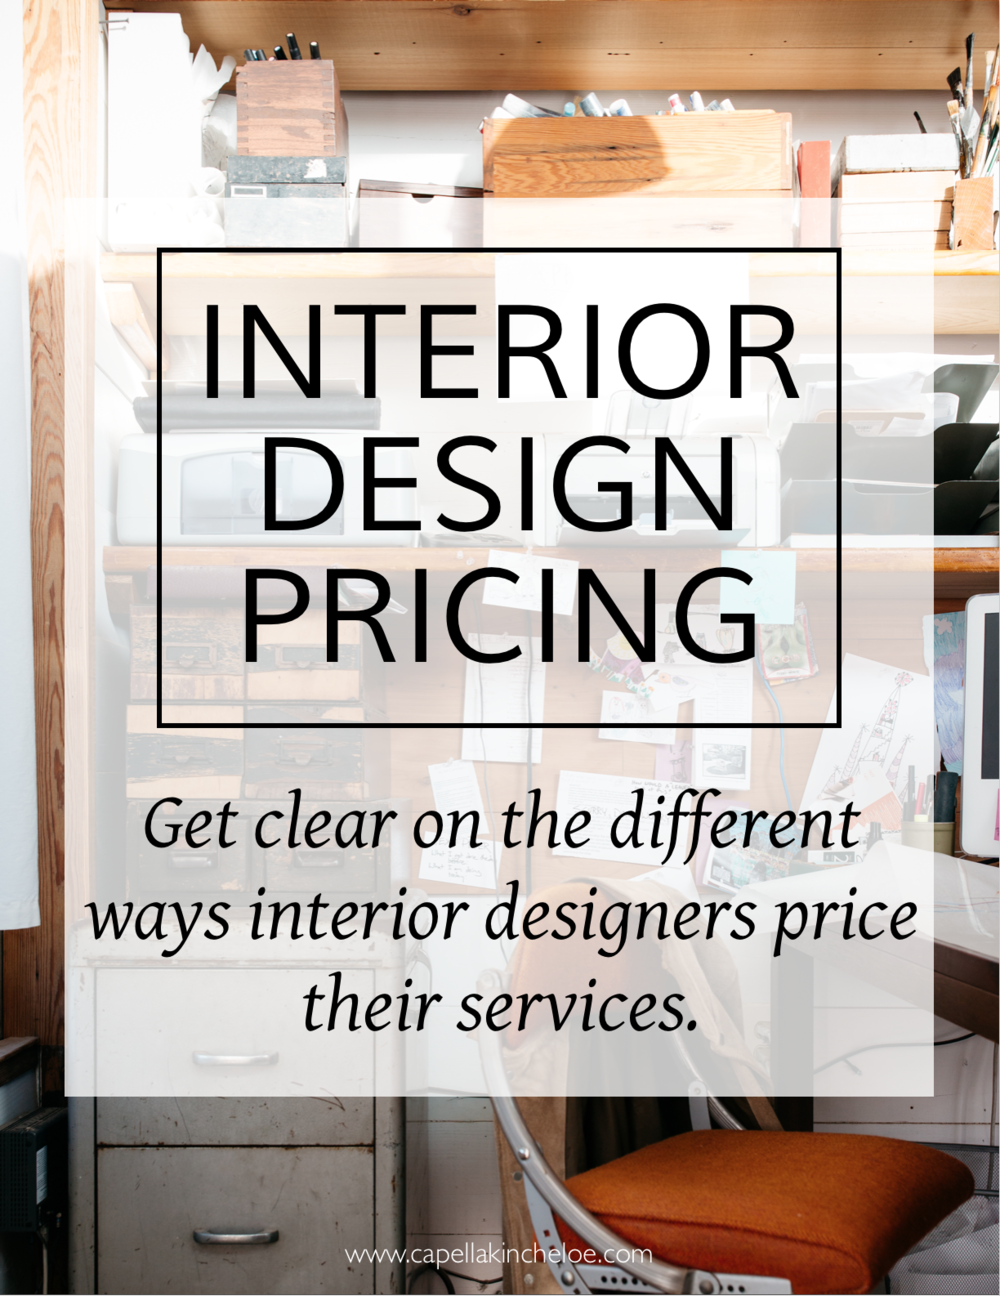 Pricing Interior Design Services Can Be Confusing This Article Clears Up All The Different Ways